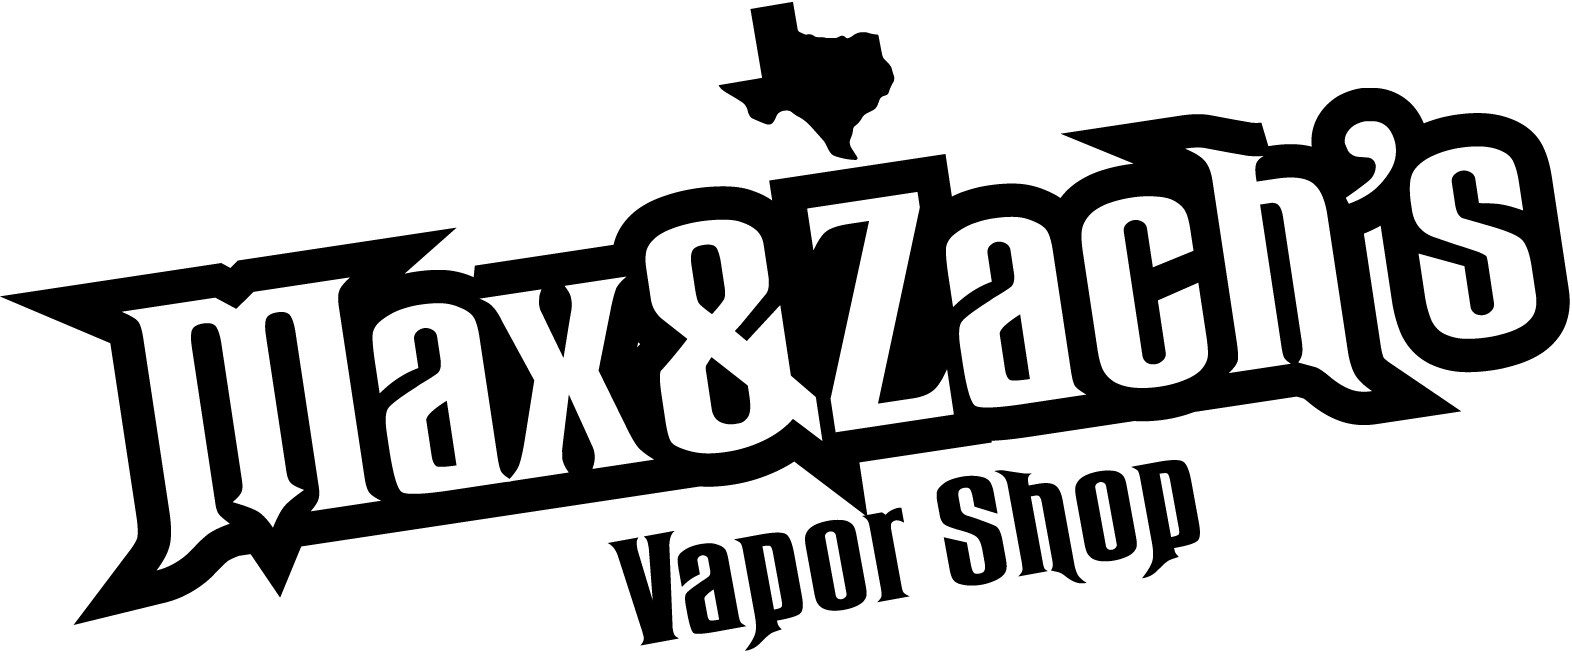 Max and Zach's Vapor Shops